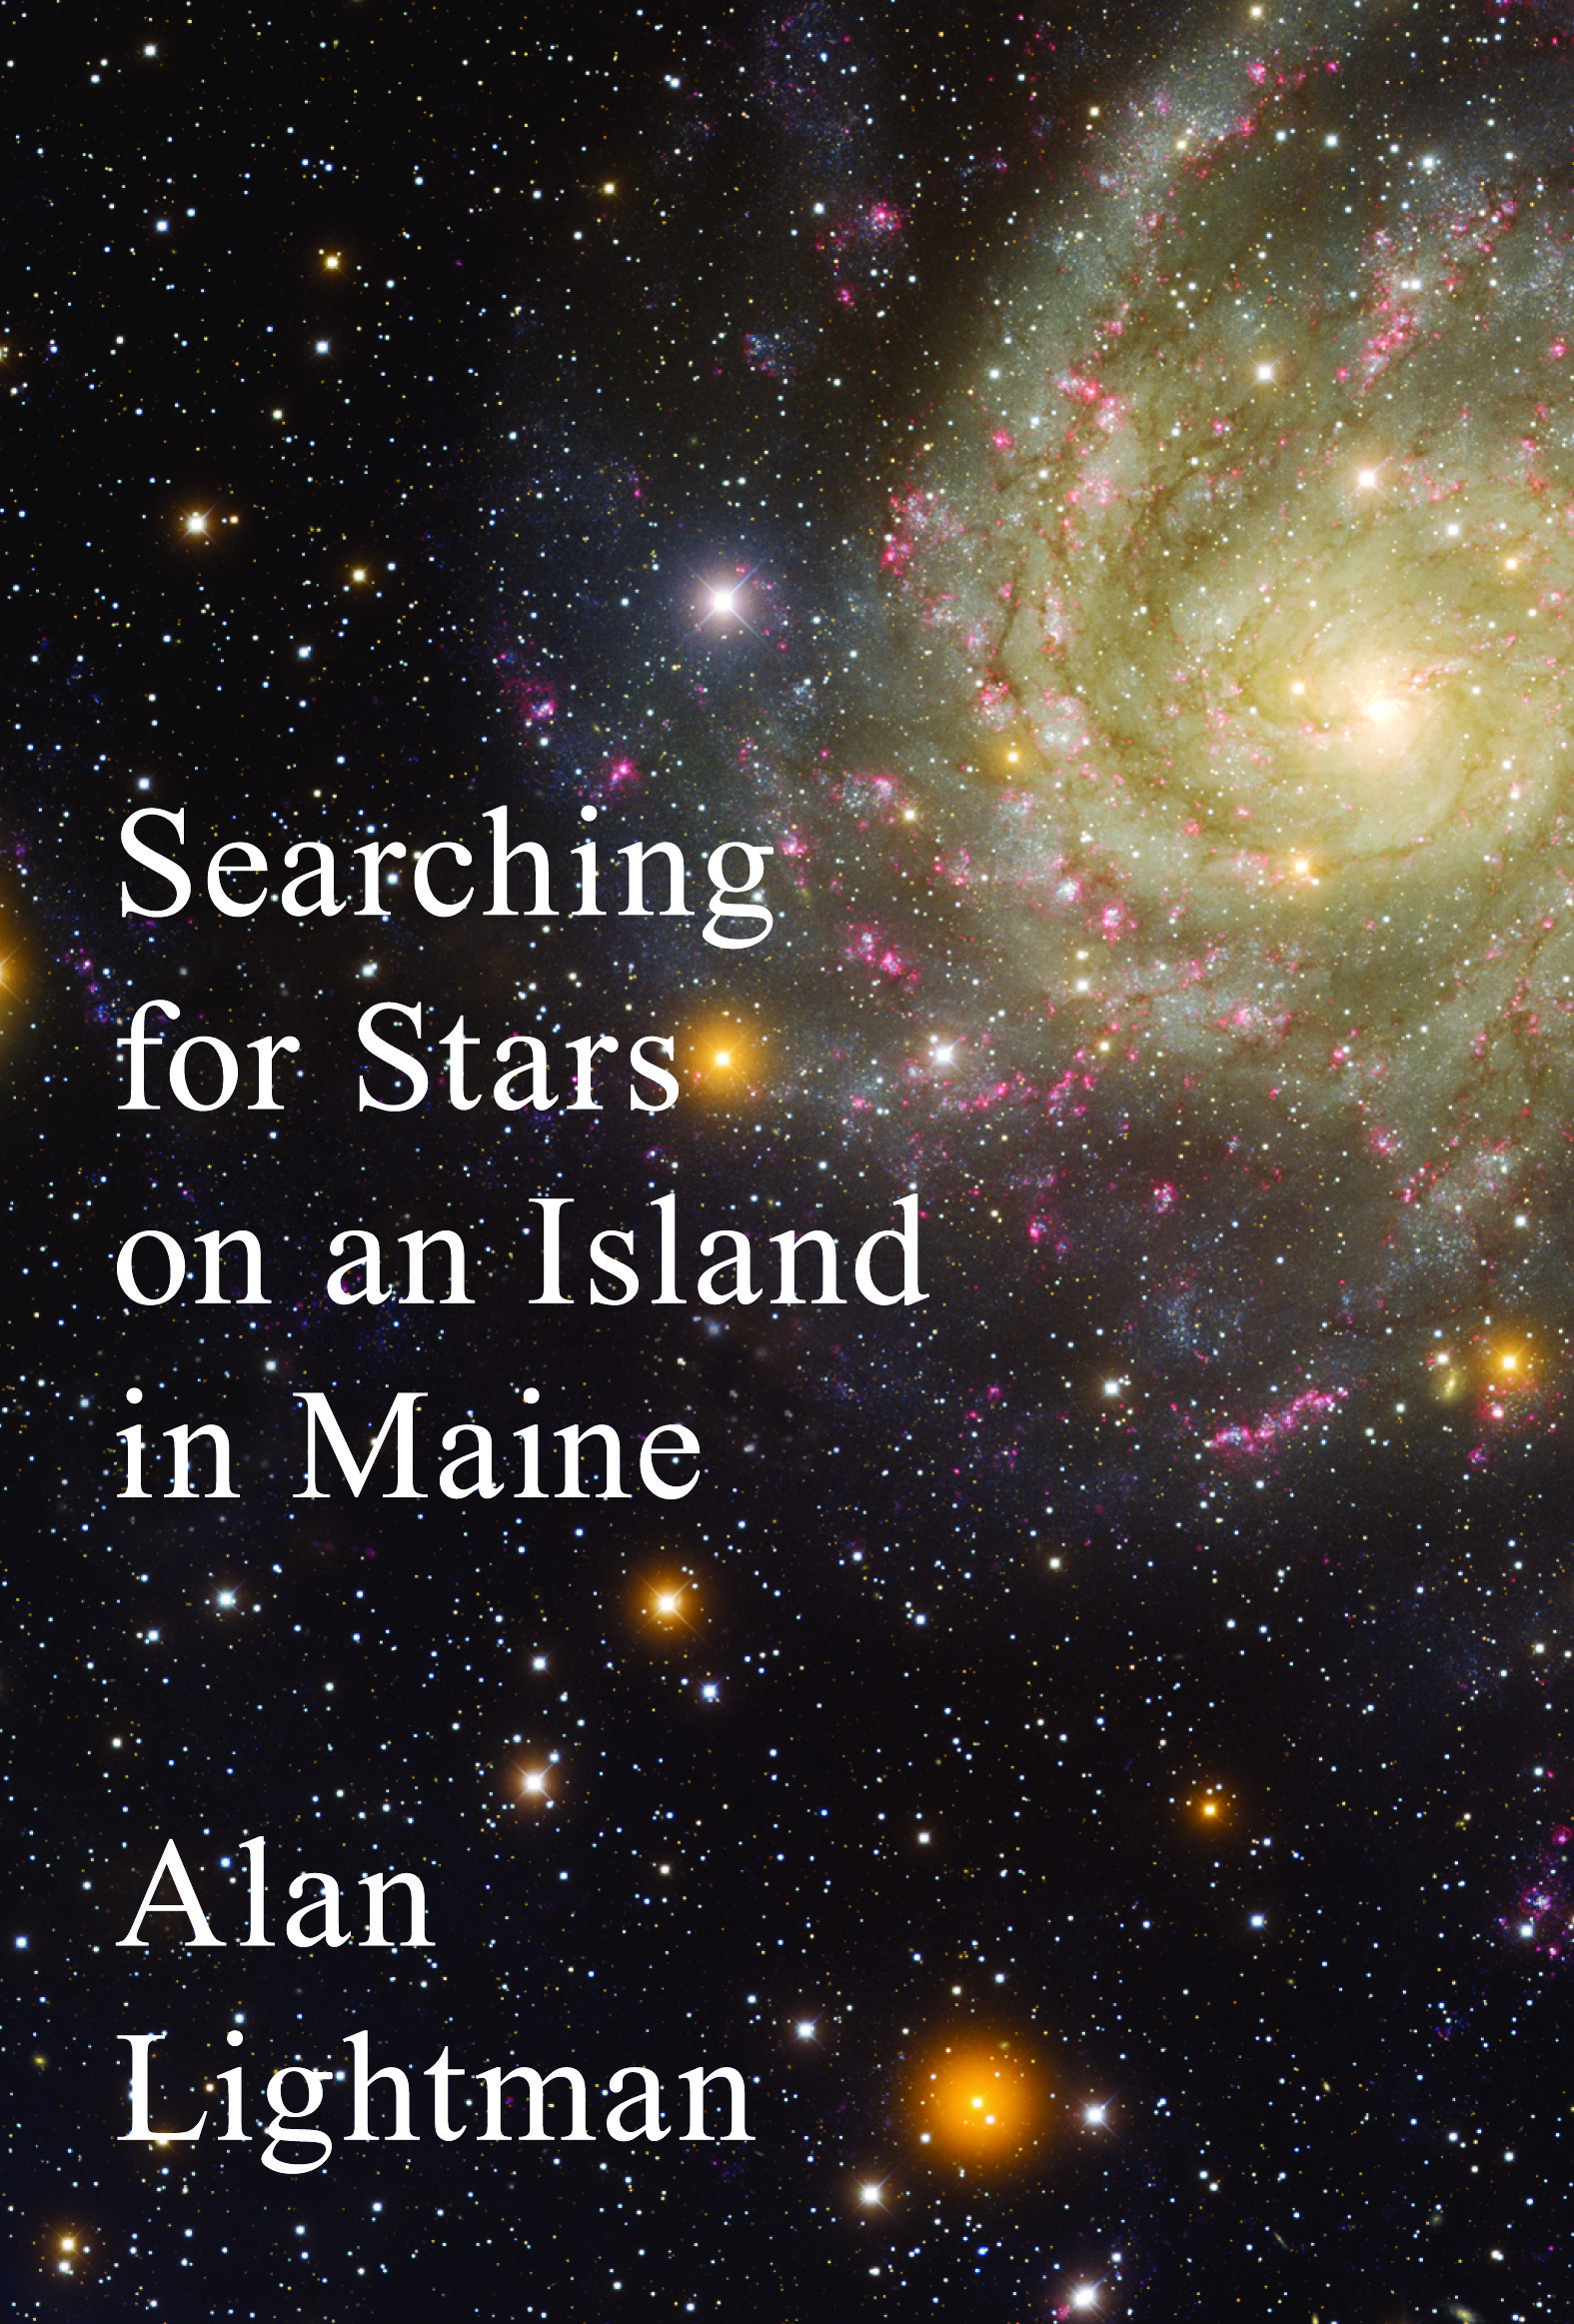 Searching for Stars on an Island in Maine  by Alan Lightman (Pantheon Books)   READ MORE